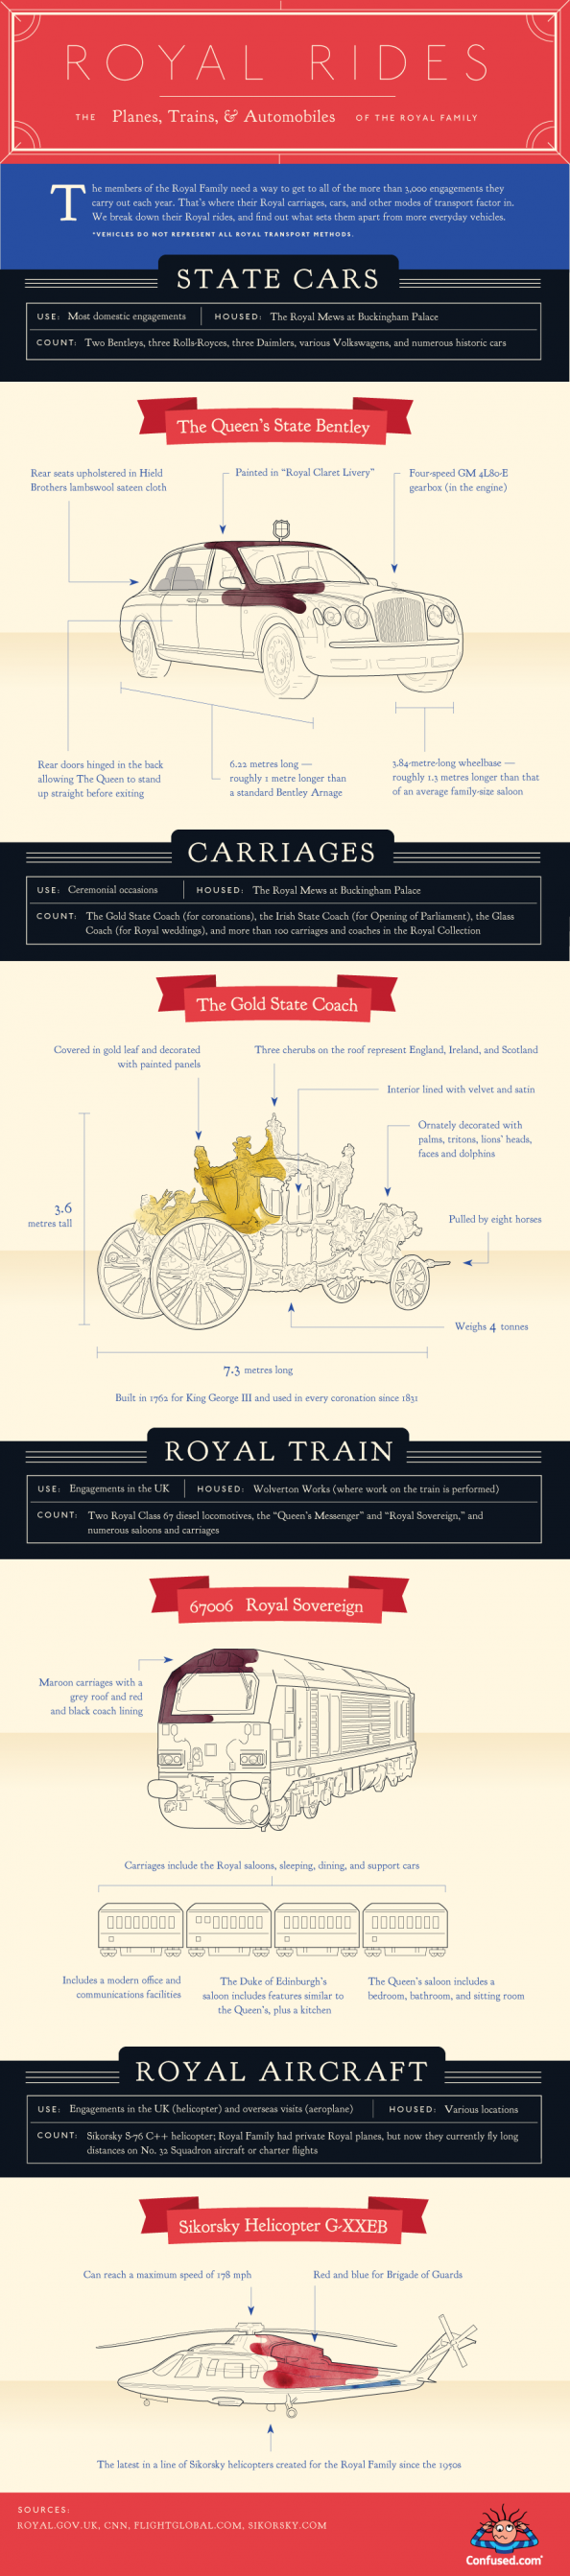 Royal Rides Infographic